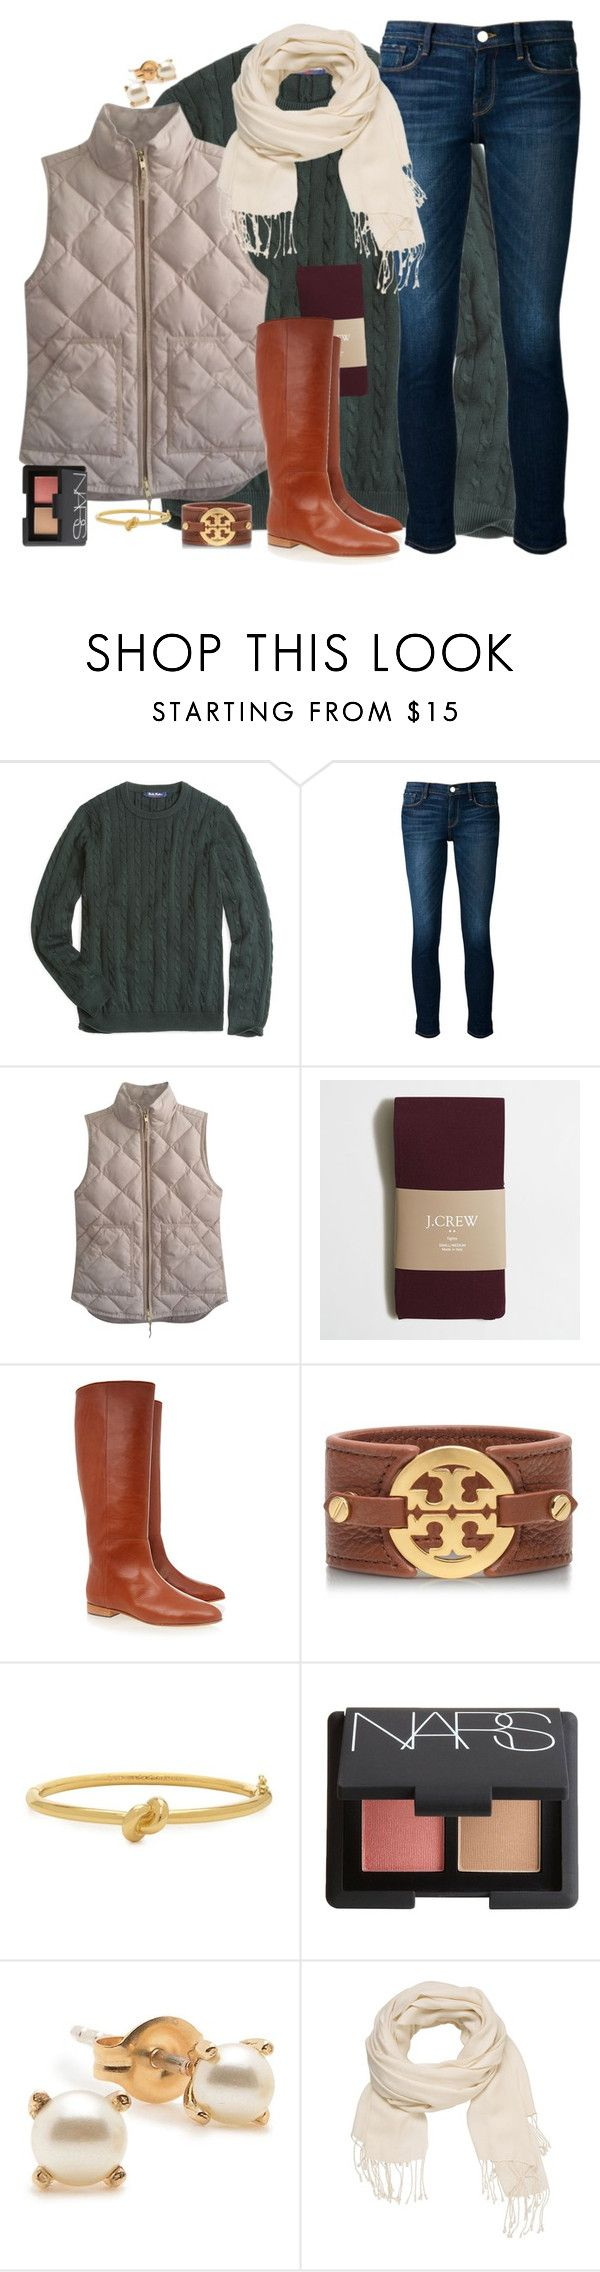 """""""At Least I'm the One Who Tried"""" by southernstylish ❤ liked on Polyvore featuring Brooks Brothers, Frame Denim, J.Crew, Loeffler Randall, Tory Burch, Kate Spade, NARS Cosmetics, Bing Bang and maurices"""